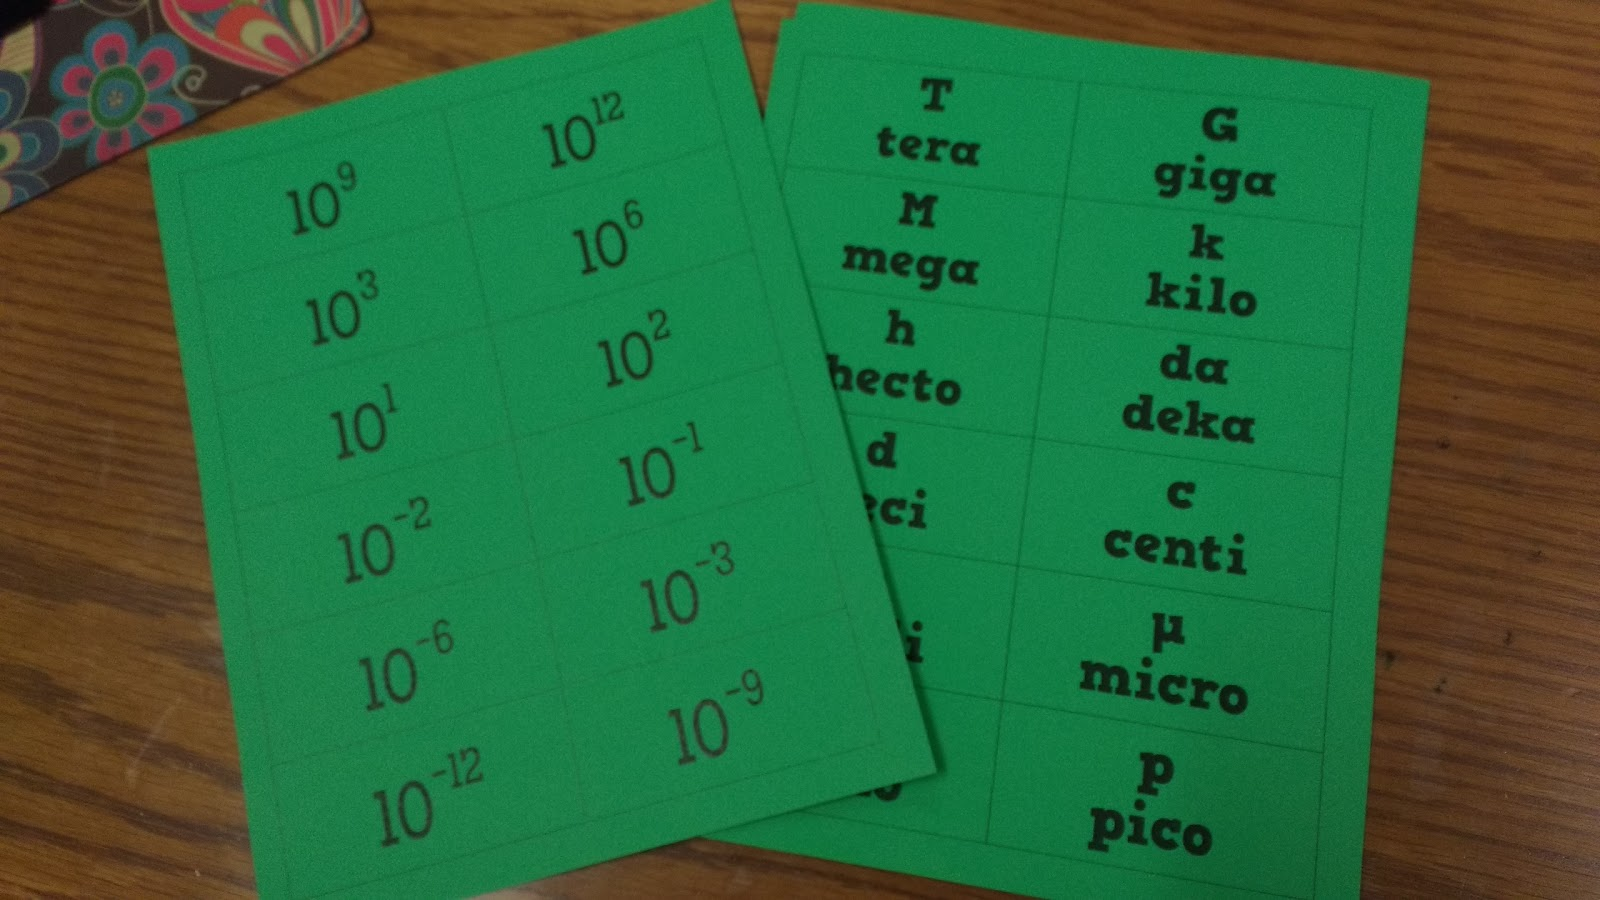 Math love metric prefix flashcards and quiz i let my chemistry students make their own flashcards earlier in the year for memorizing the symbols of the first 36 elements gamestrikefo Gallery